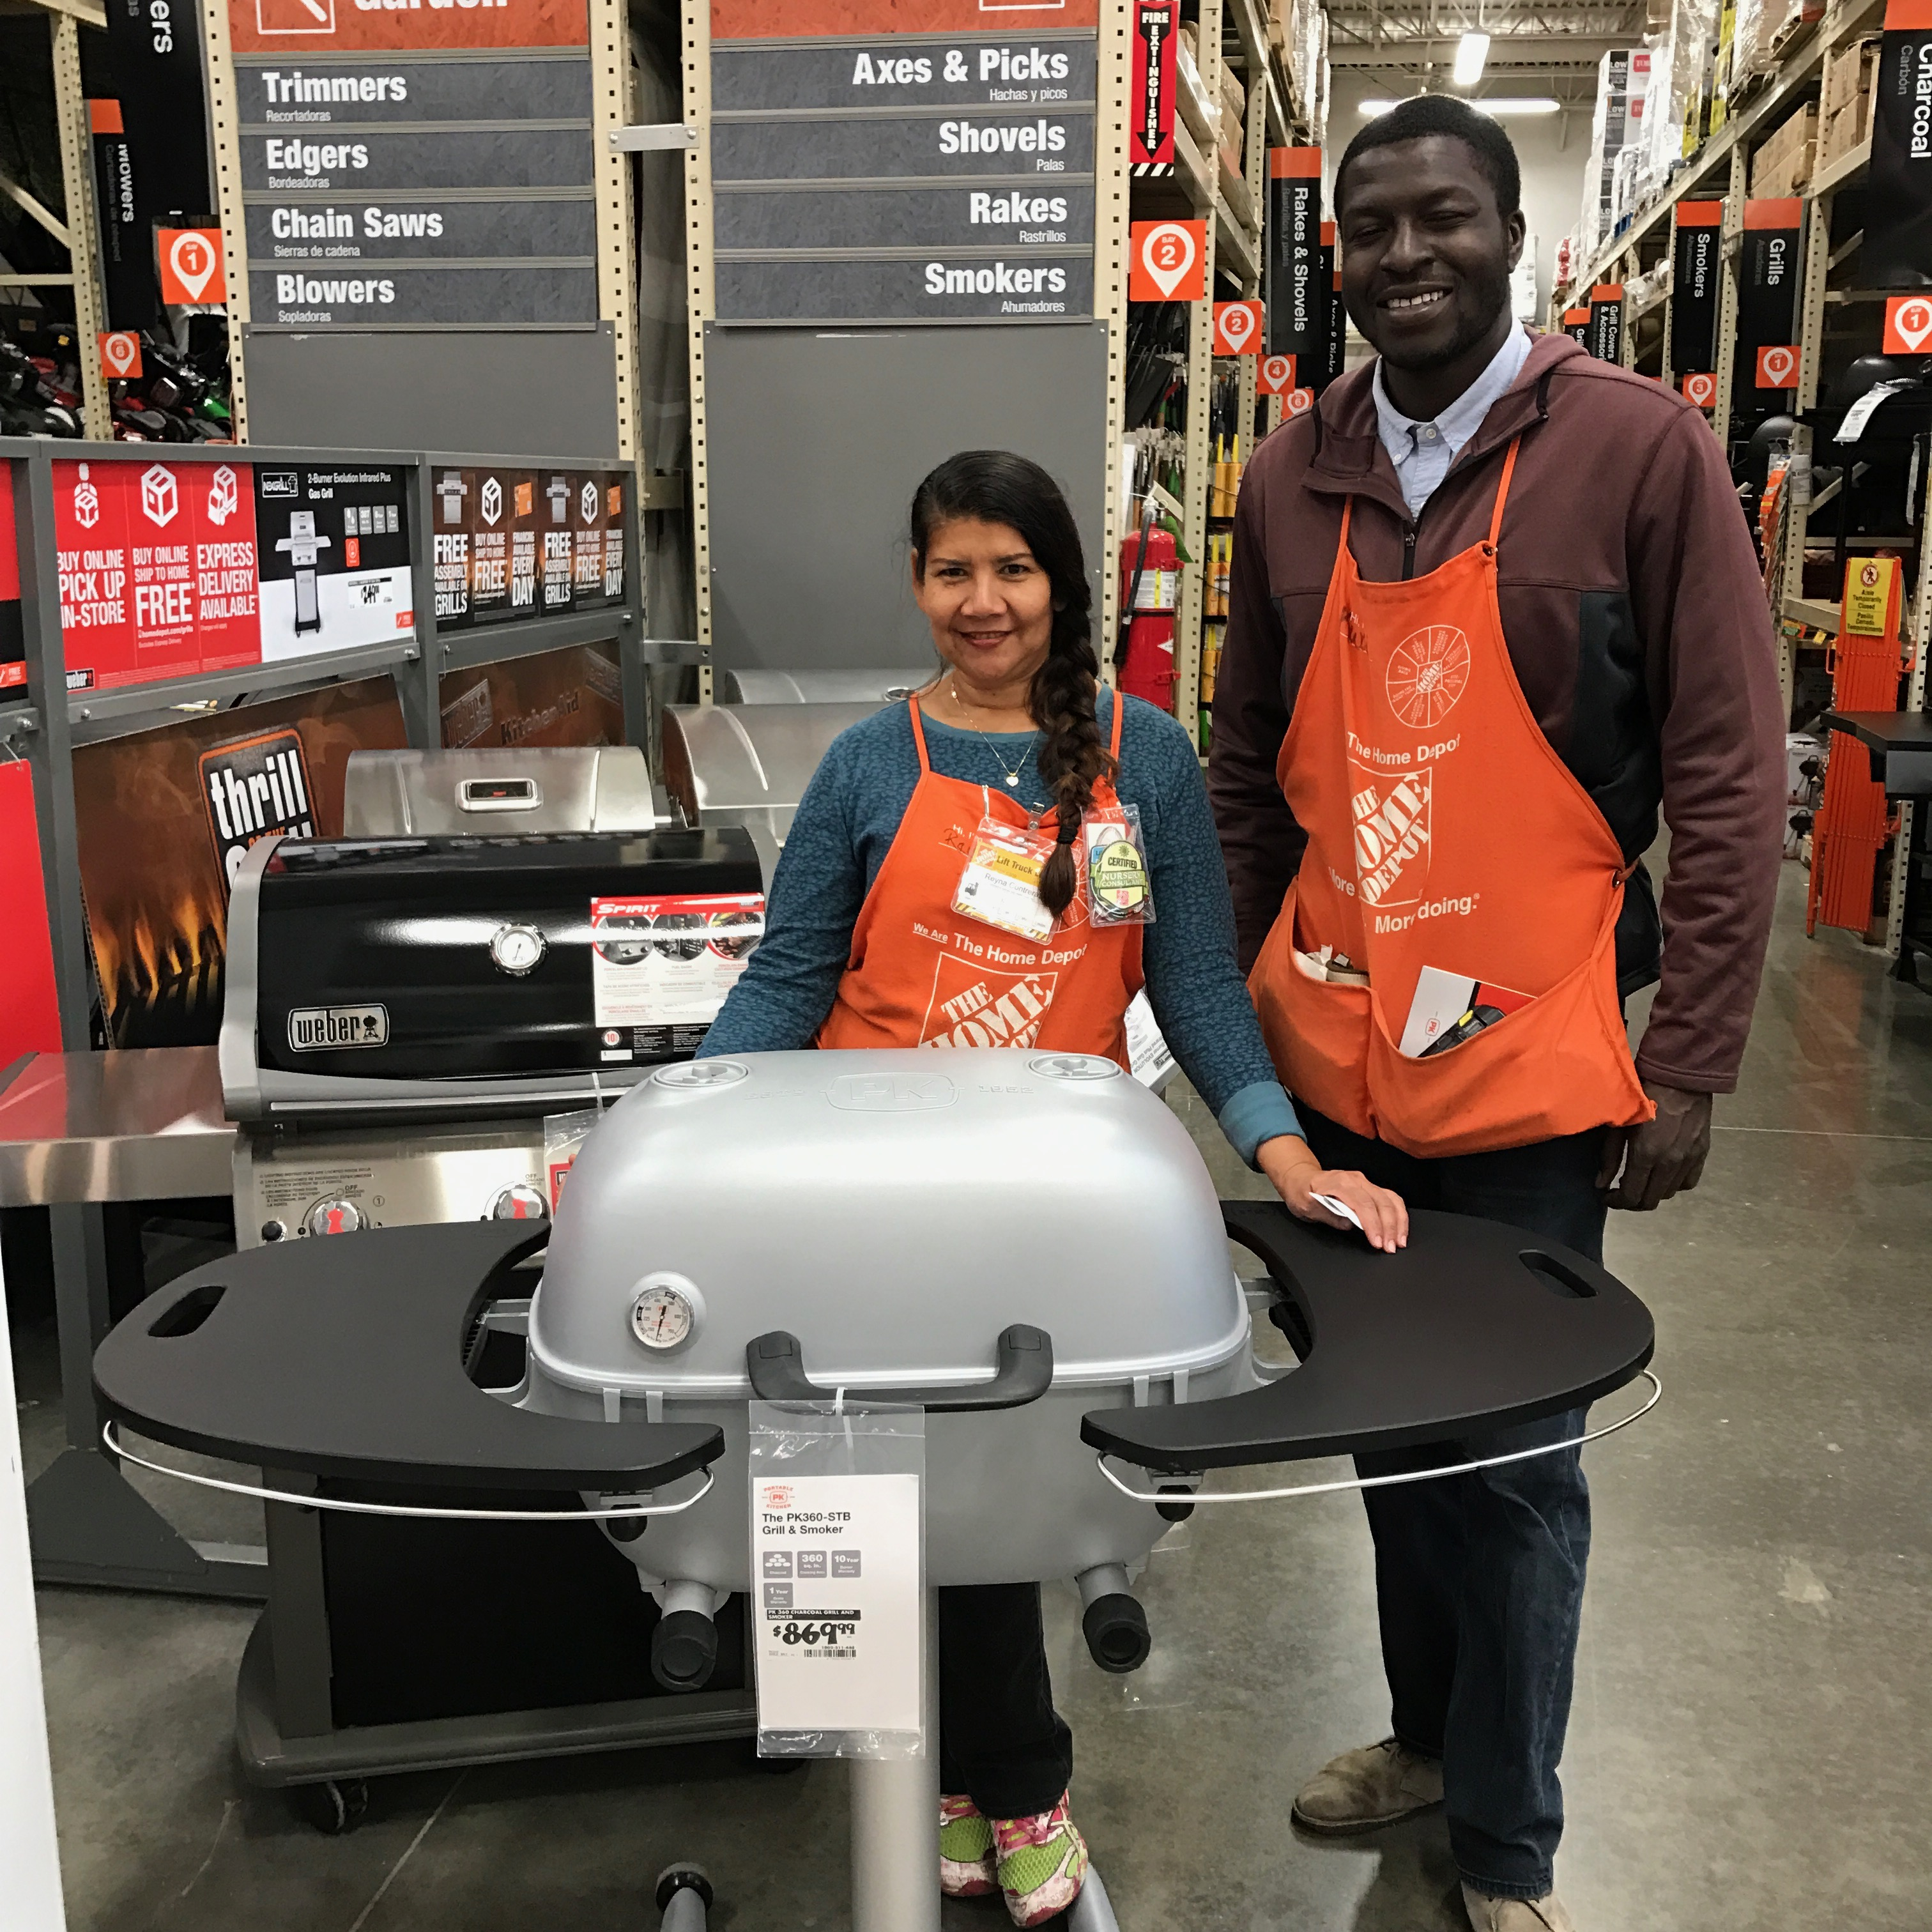 The Best Last Grill You Ll Ever Buy Pk360 Home Depot End Of